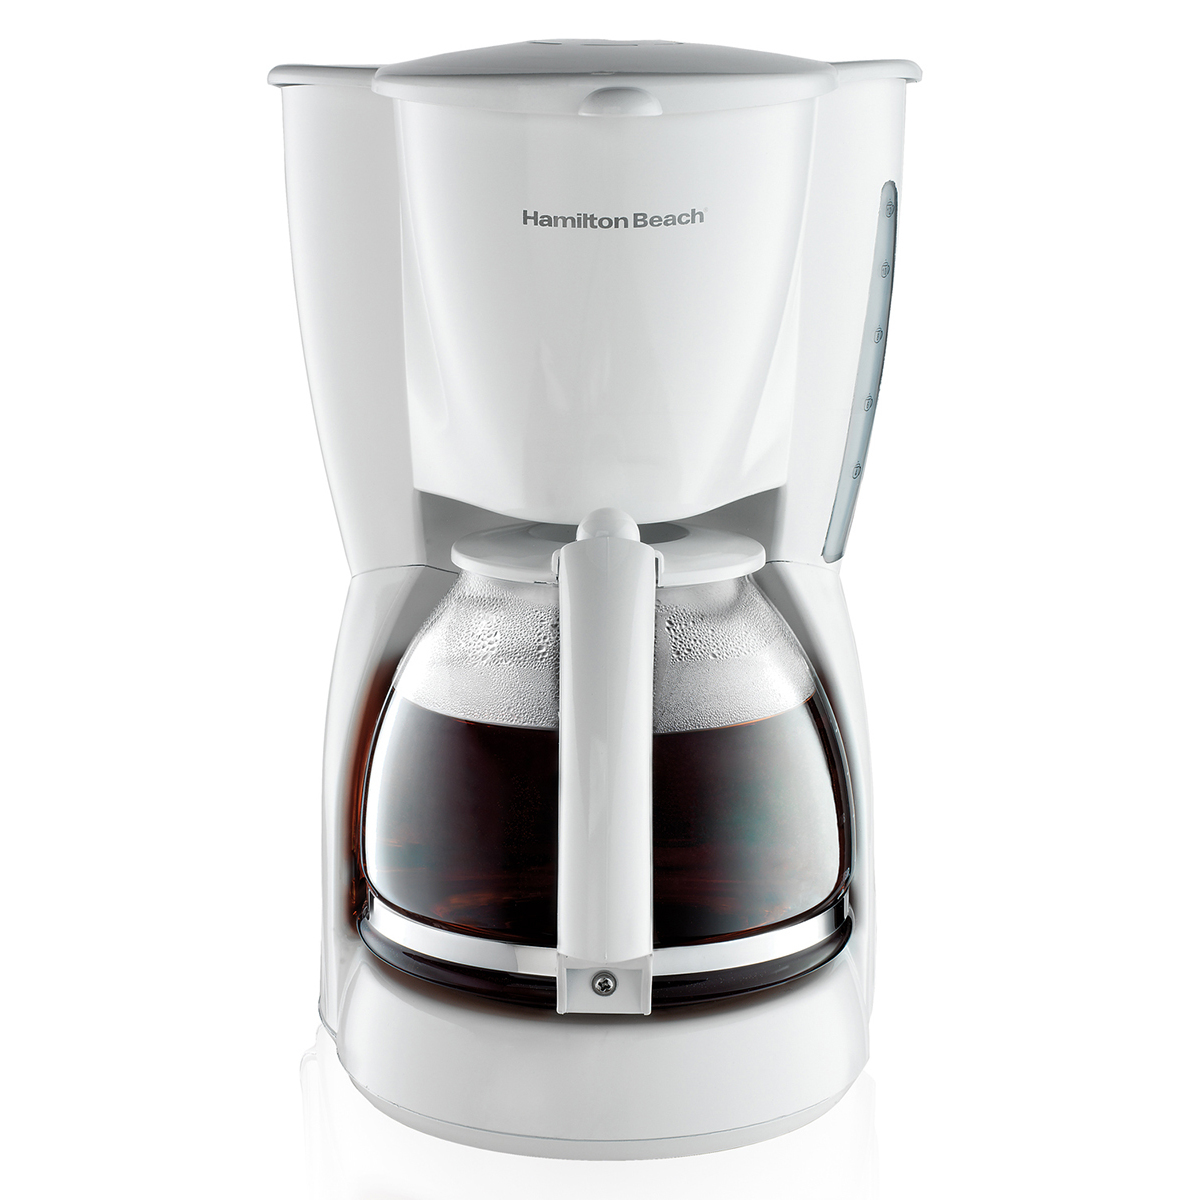 12 Cup Coffee Maker (49315)